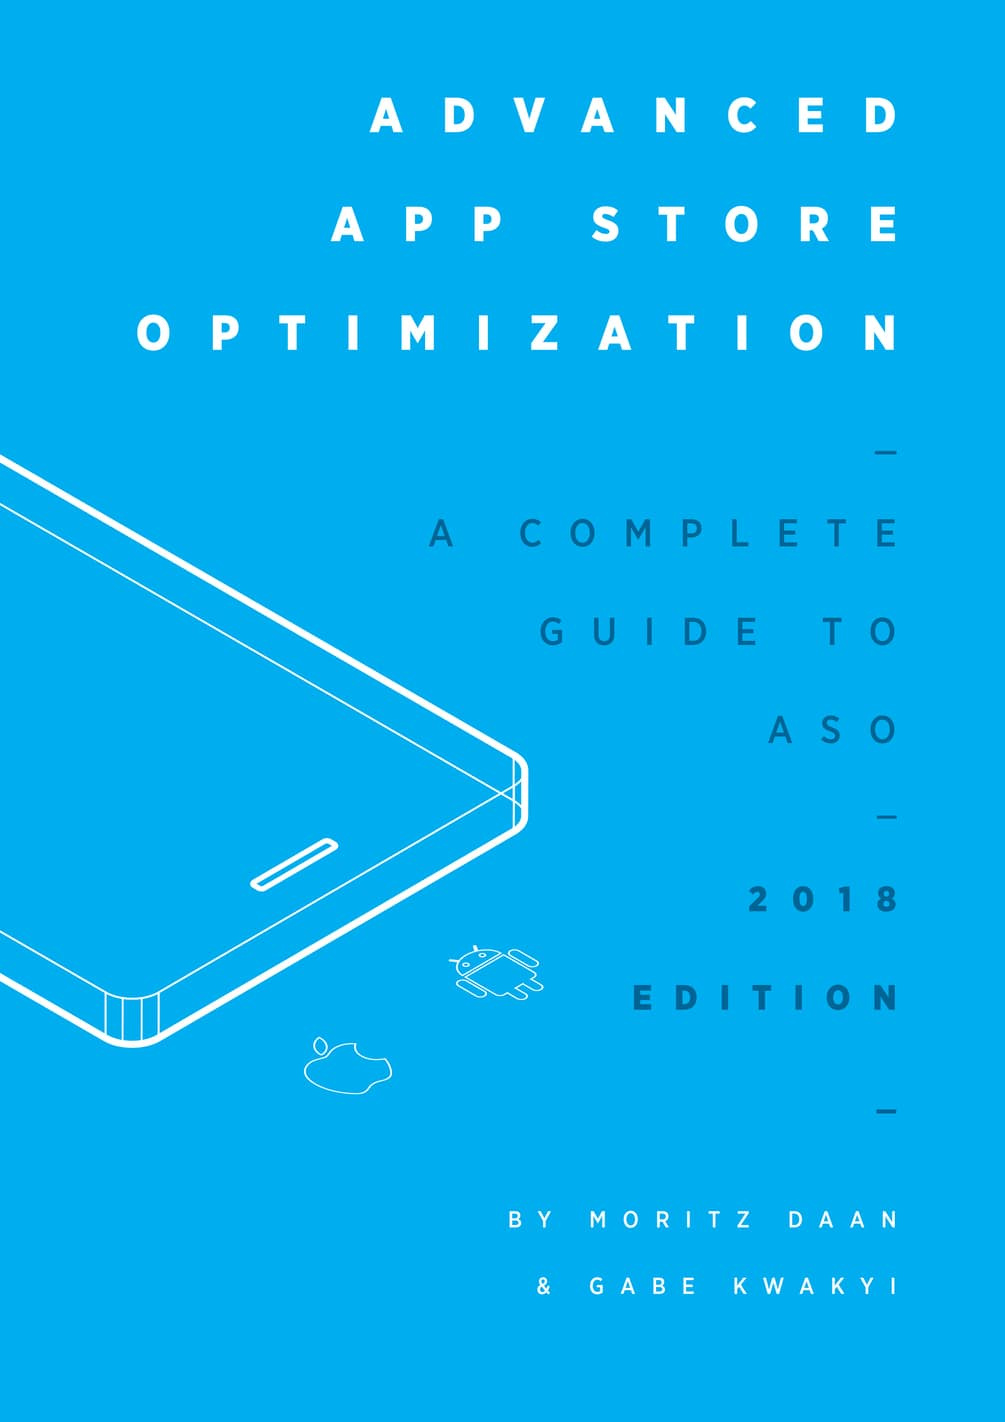 a complete guide to ASO 2018 edition ebook phiture-min